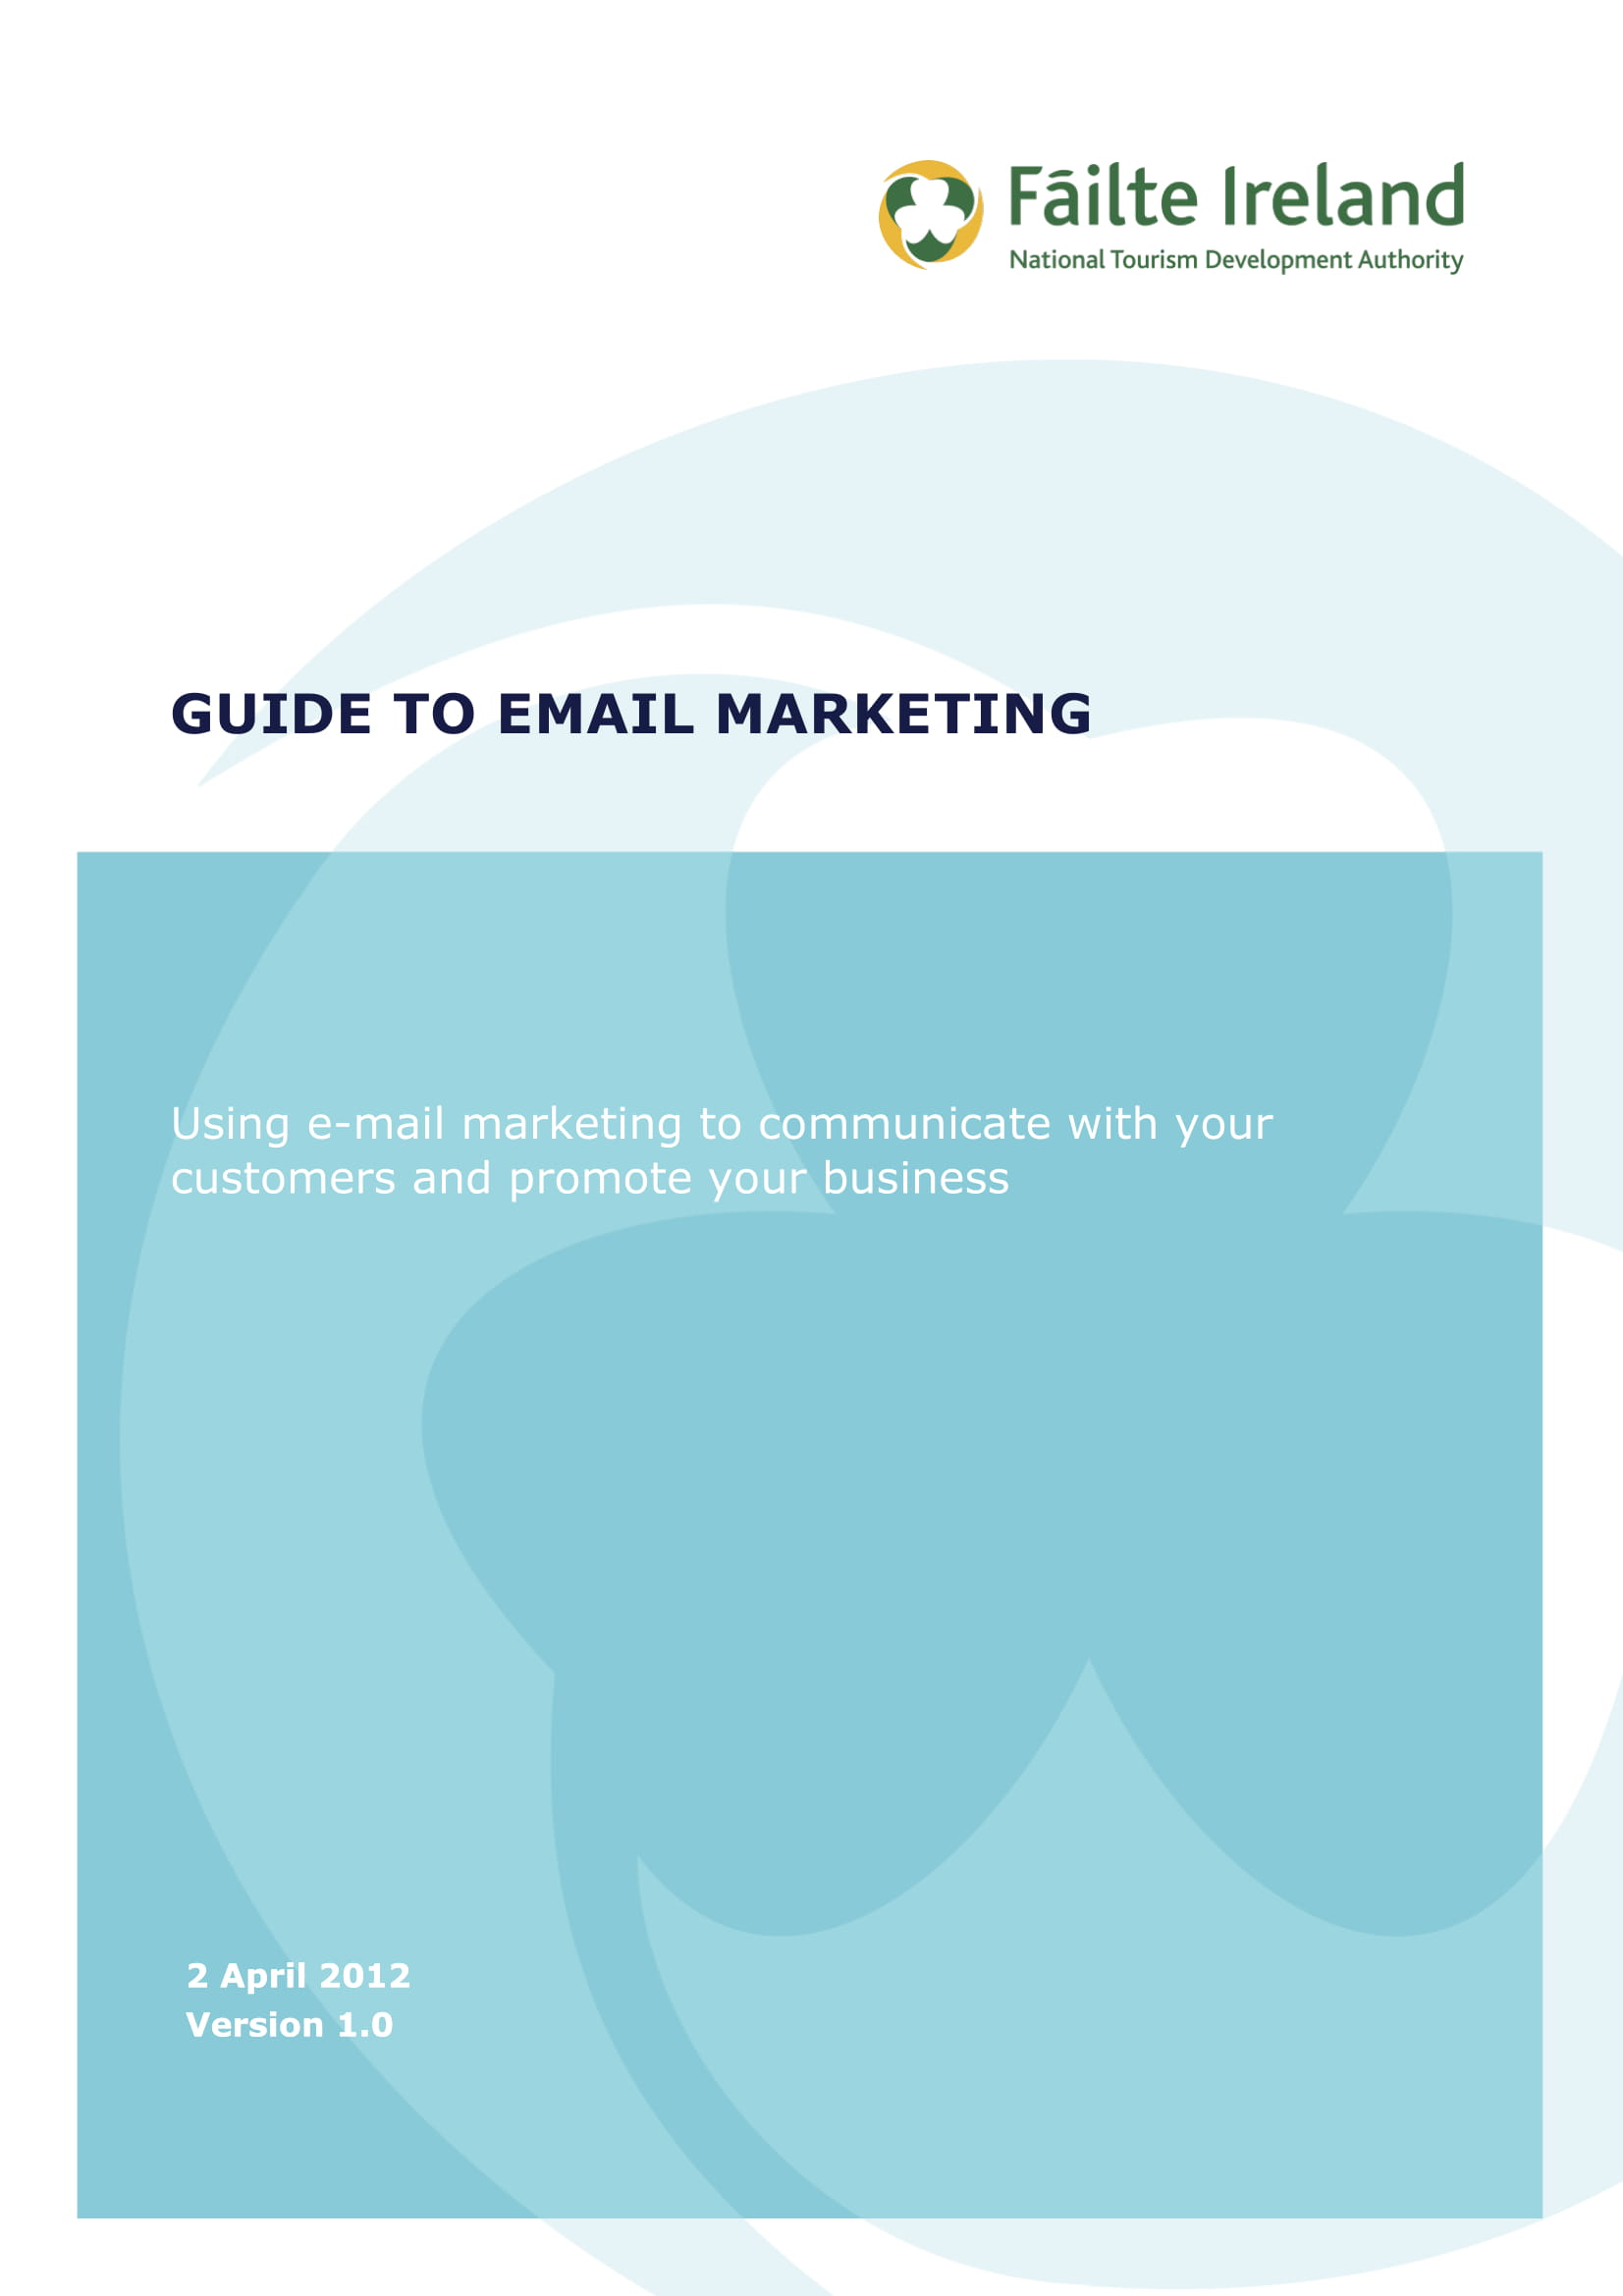 email marketing plan guide example 01